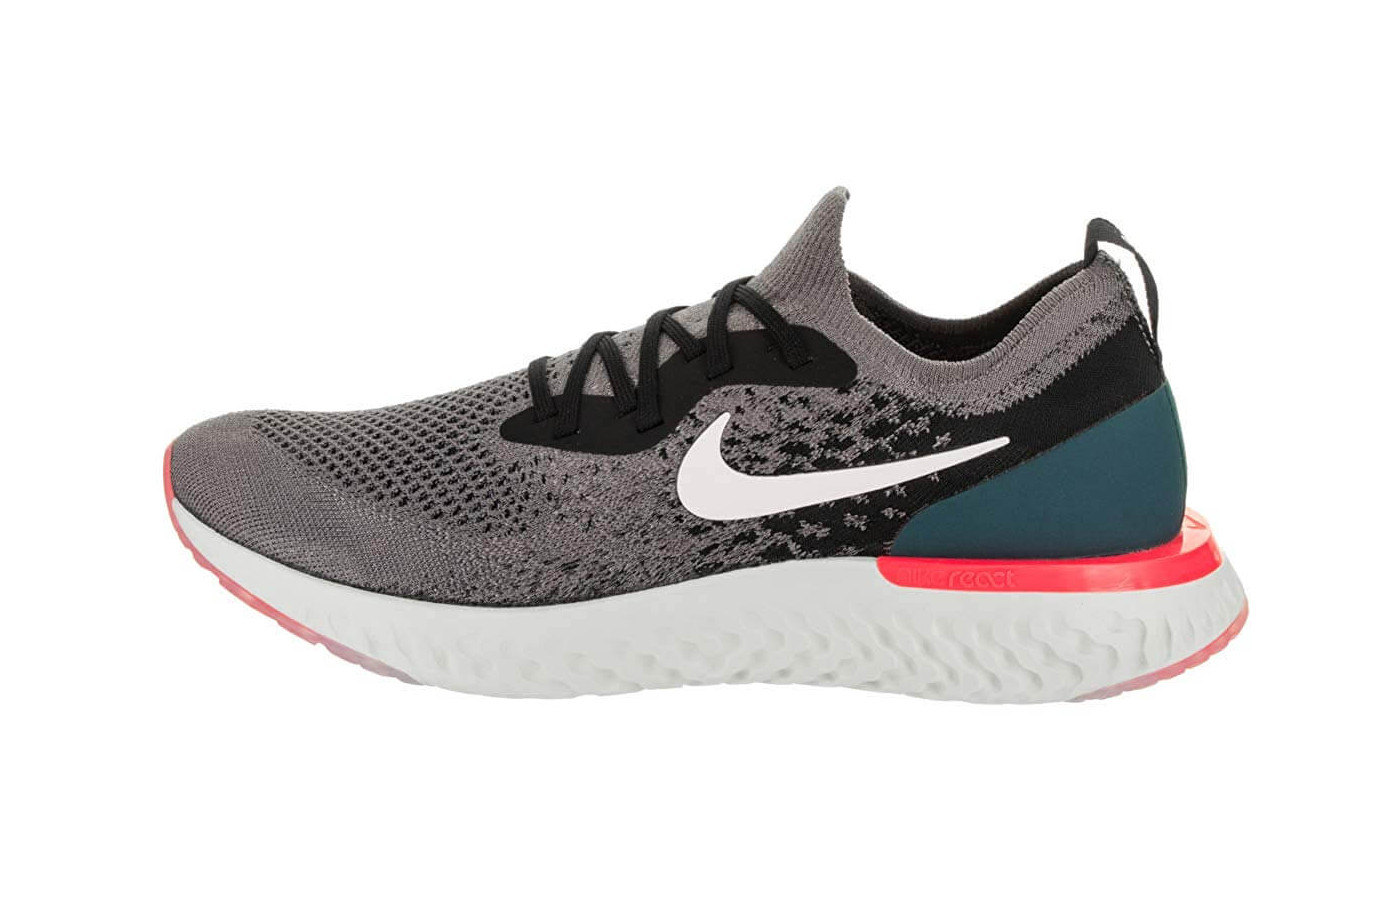 Nike Epic React Flyknit Lateral 2